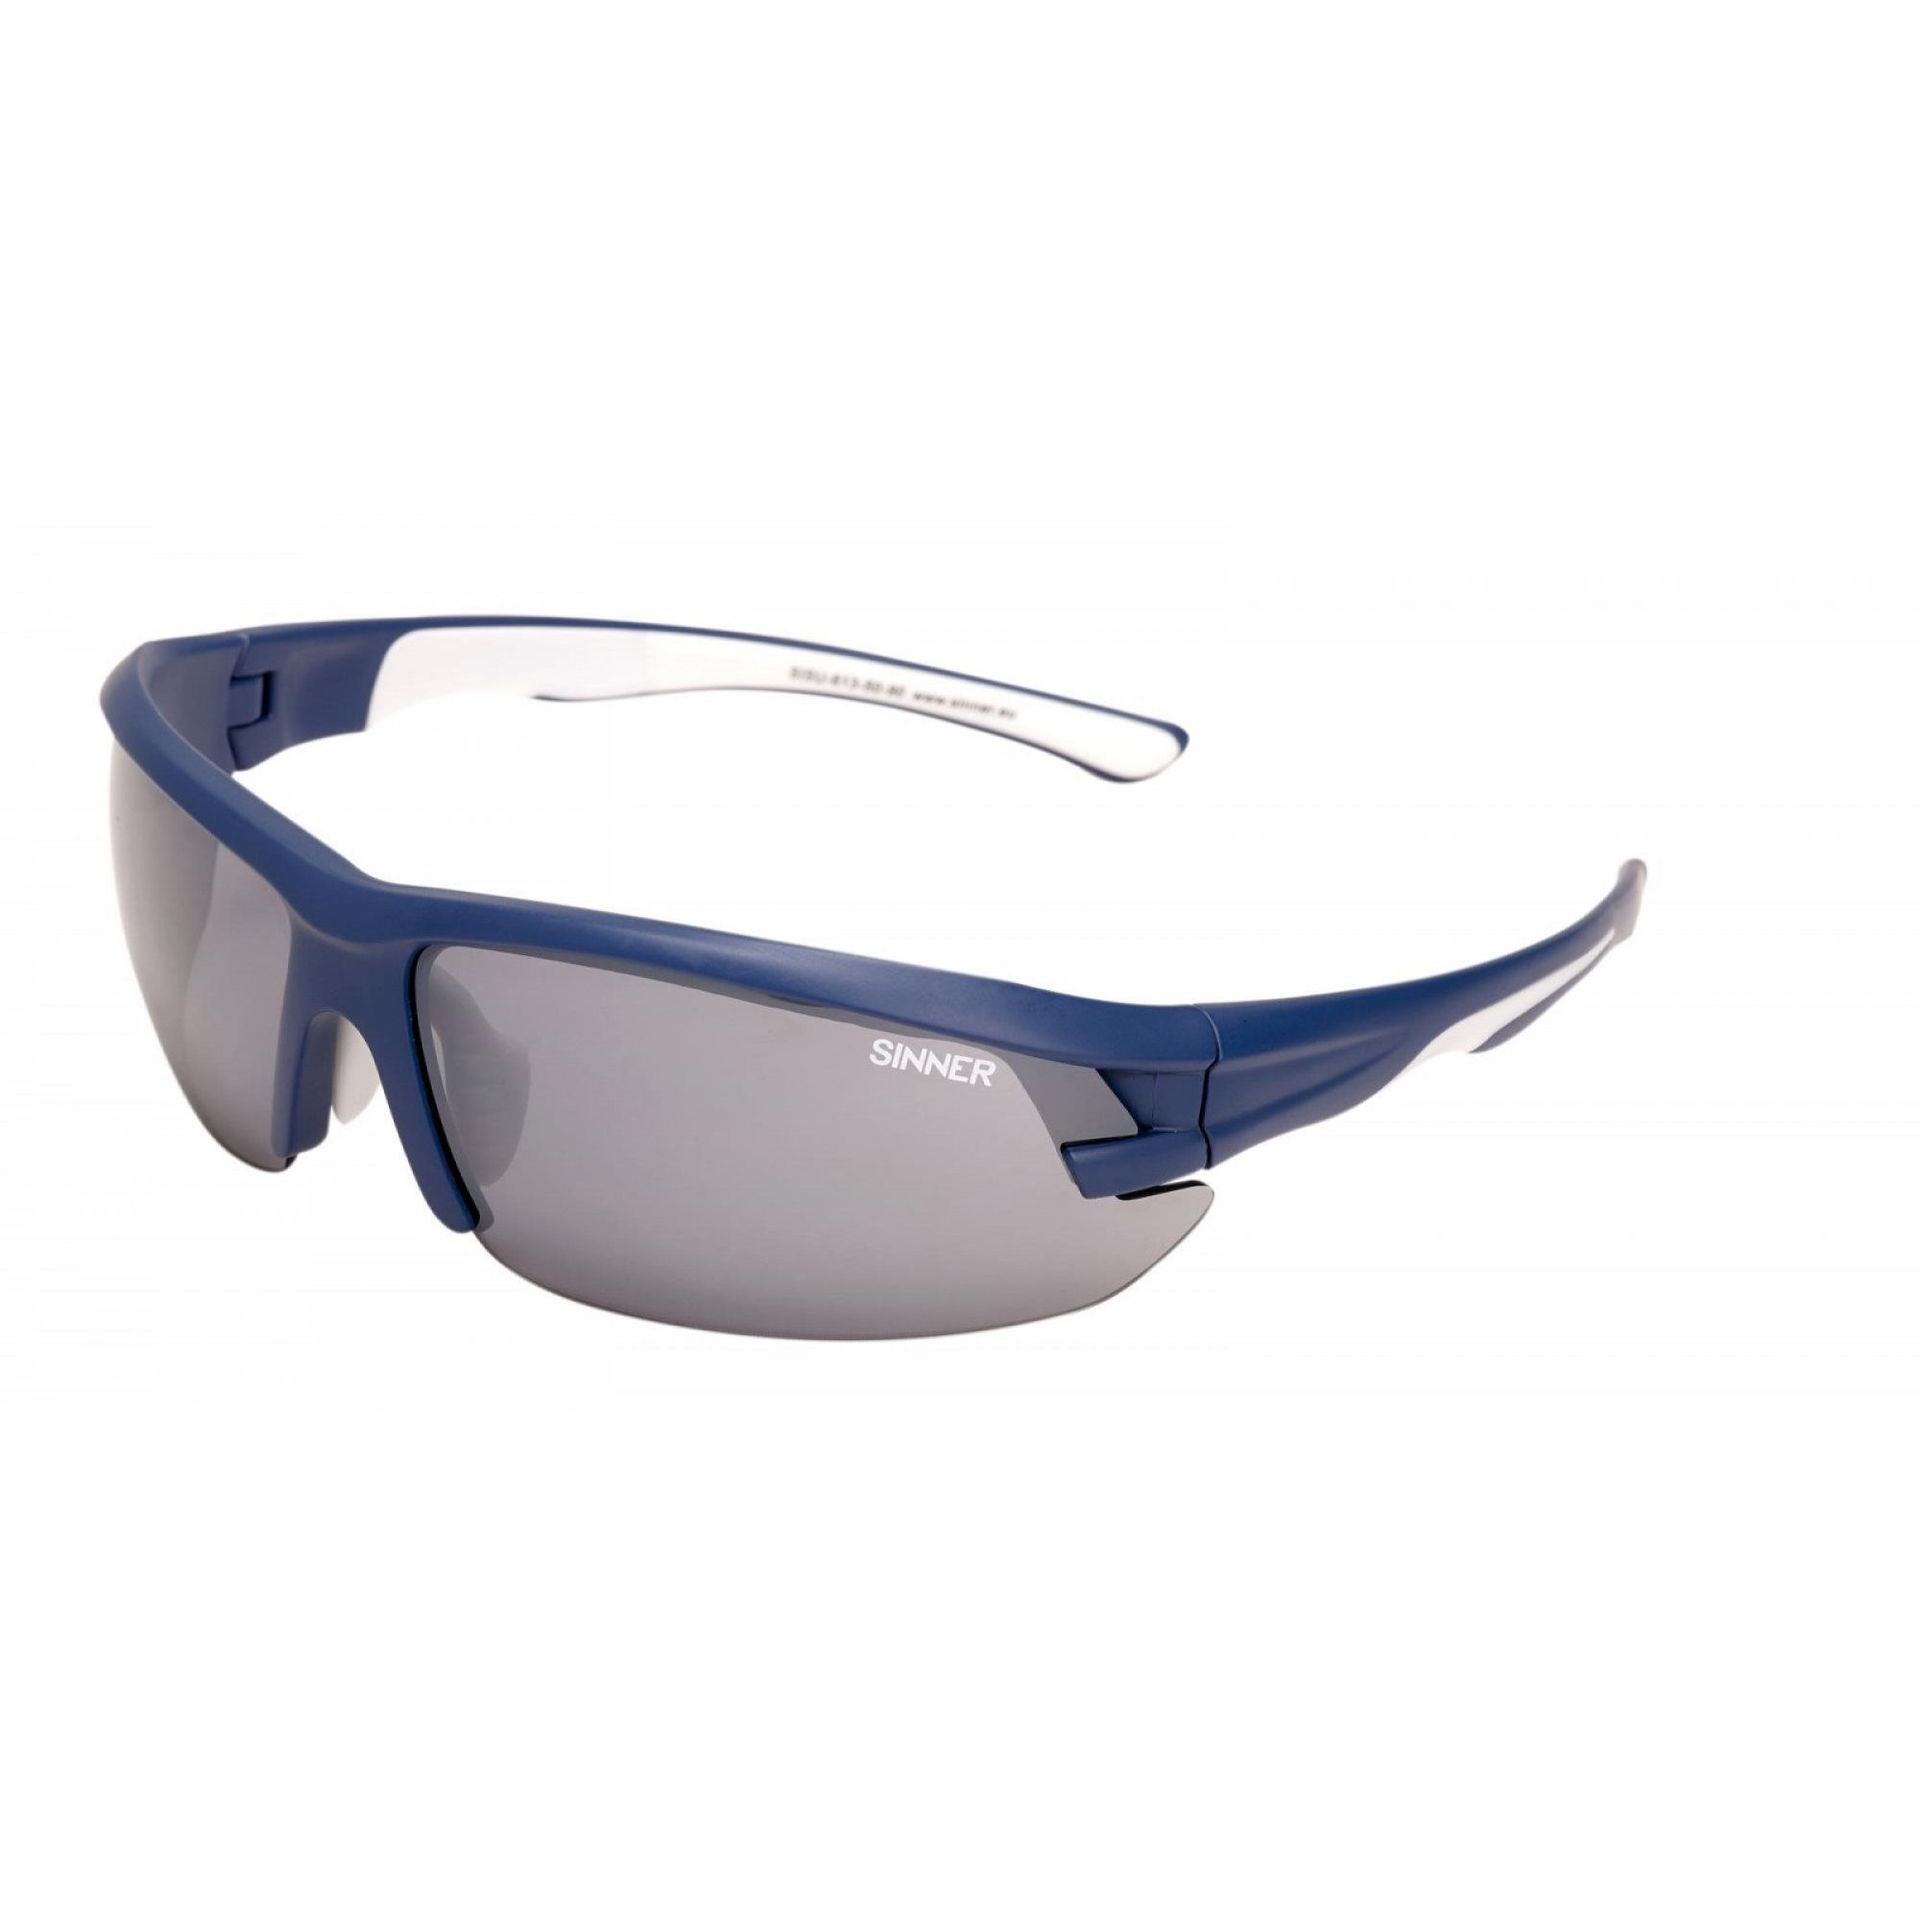 OKULARY SINNER SPEED DARK BLUE 1